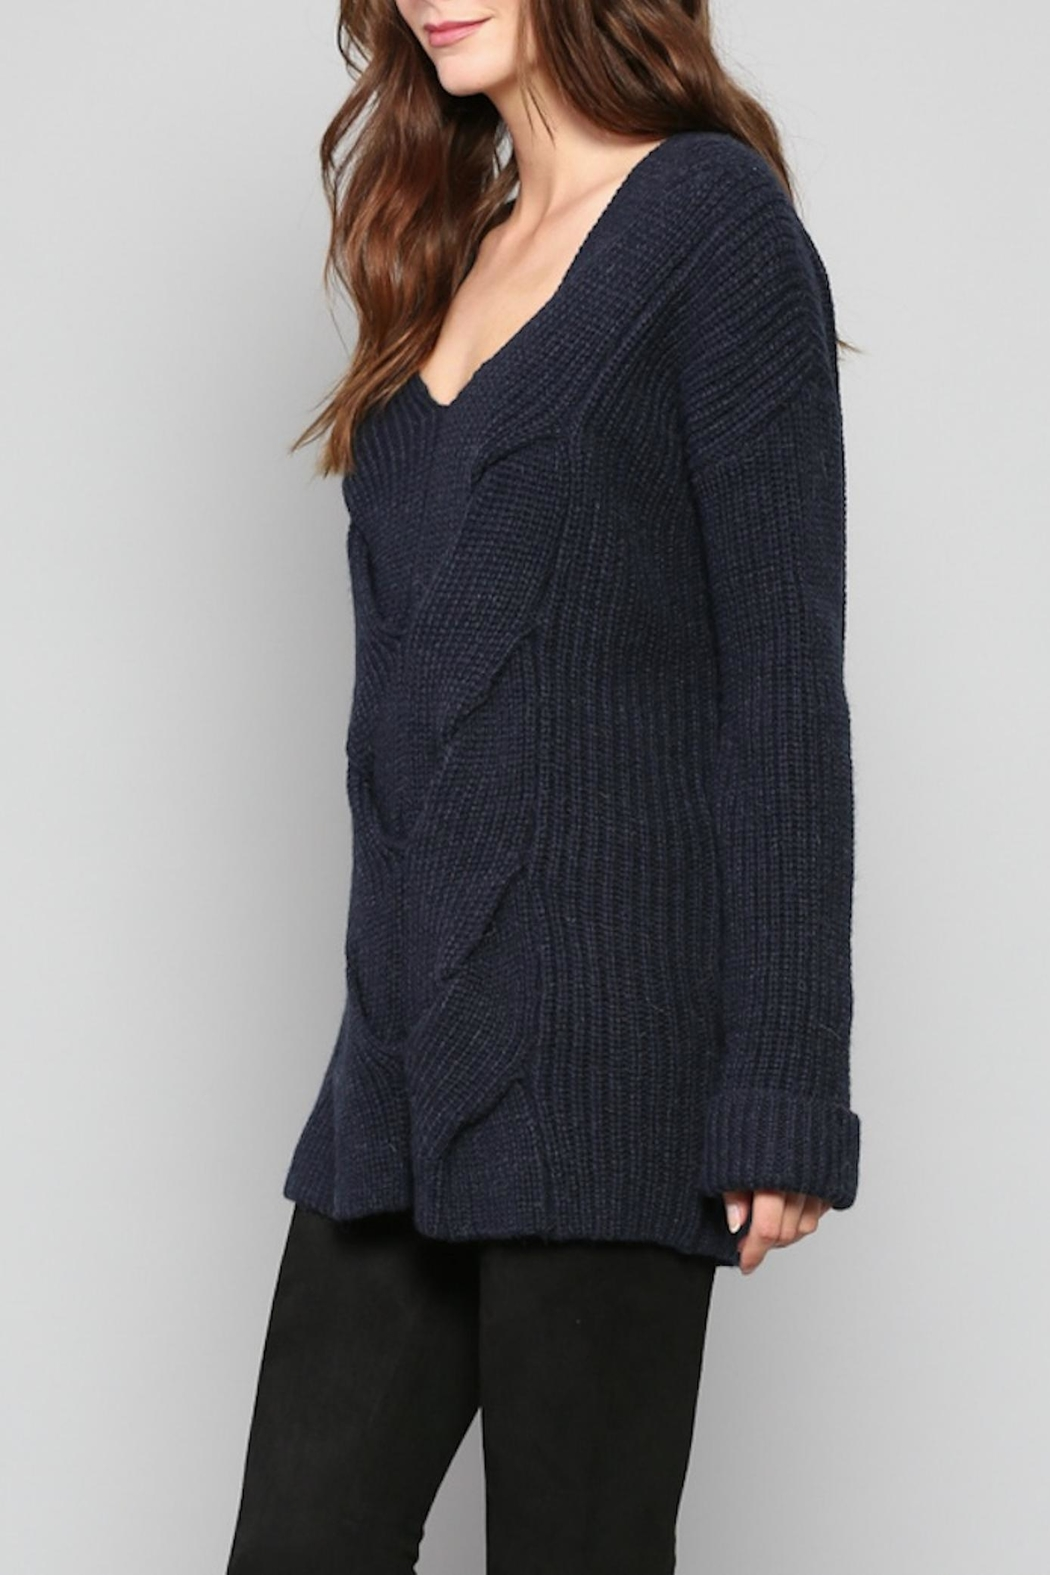 Rose & Eye Navy Cable Knit Top - Front Full Image